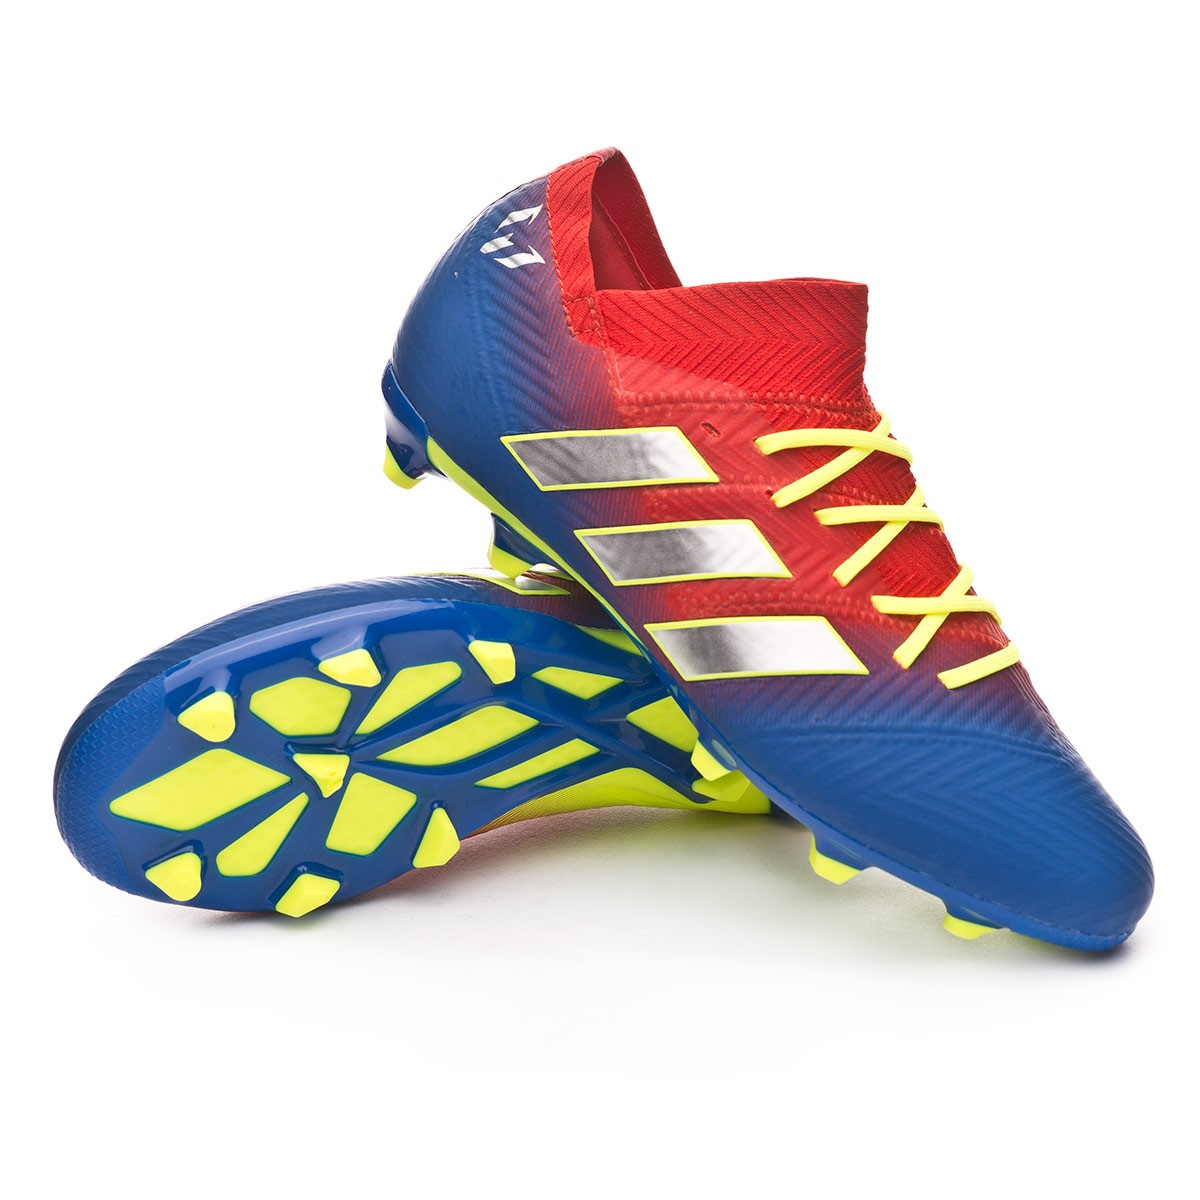 9ad3dd991 adidas Kids Nemeziz Messi 18.1 FG Football Boots. Active red-Silver  metallic-Football blue ...